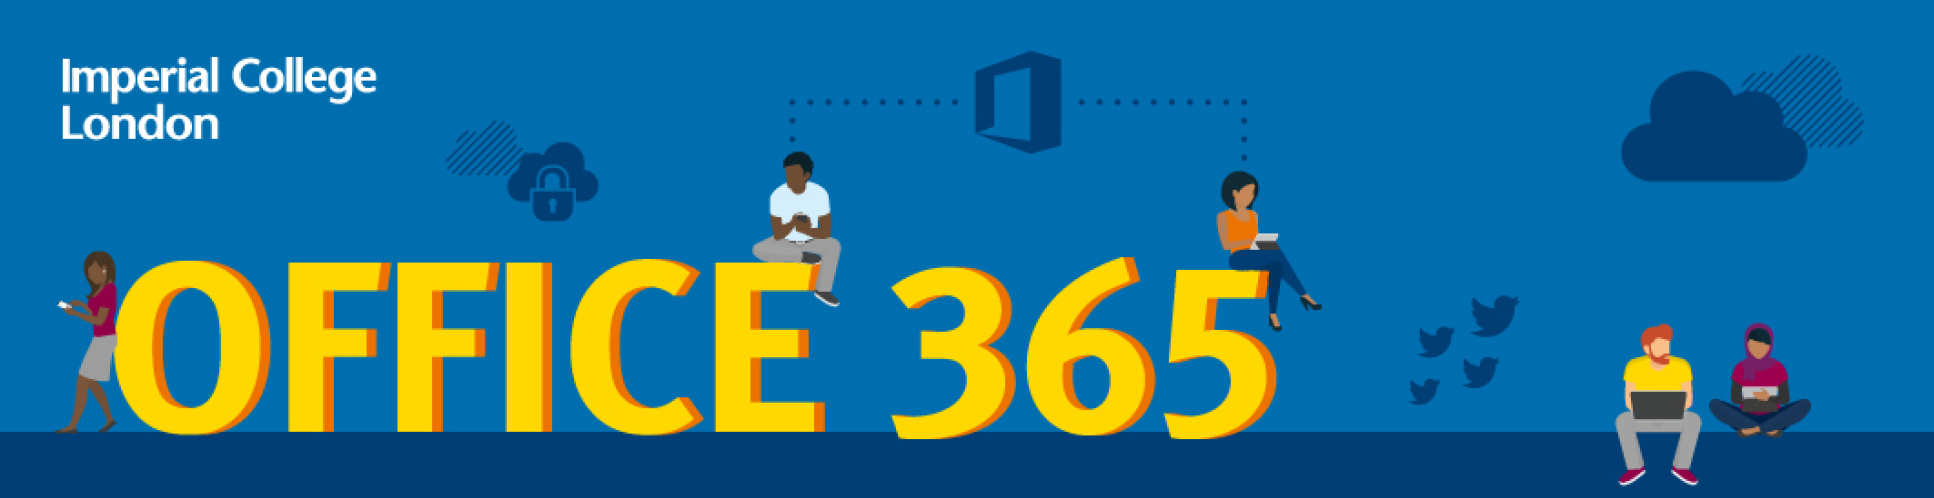 Office 365 banner image